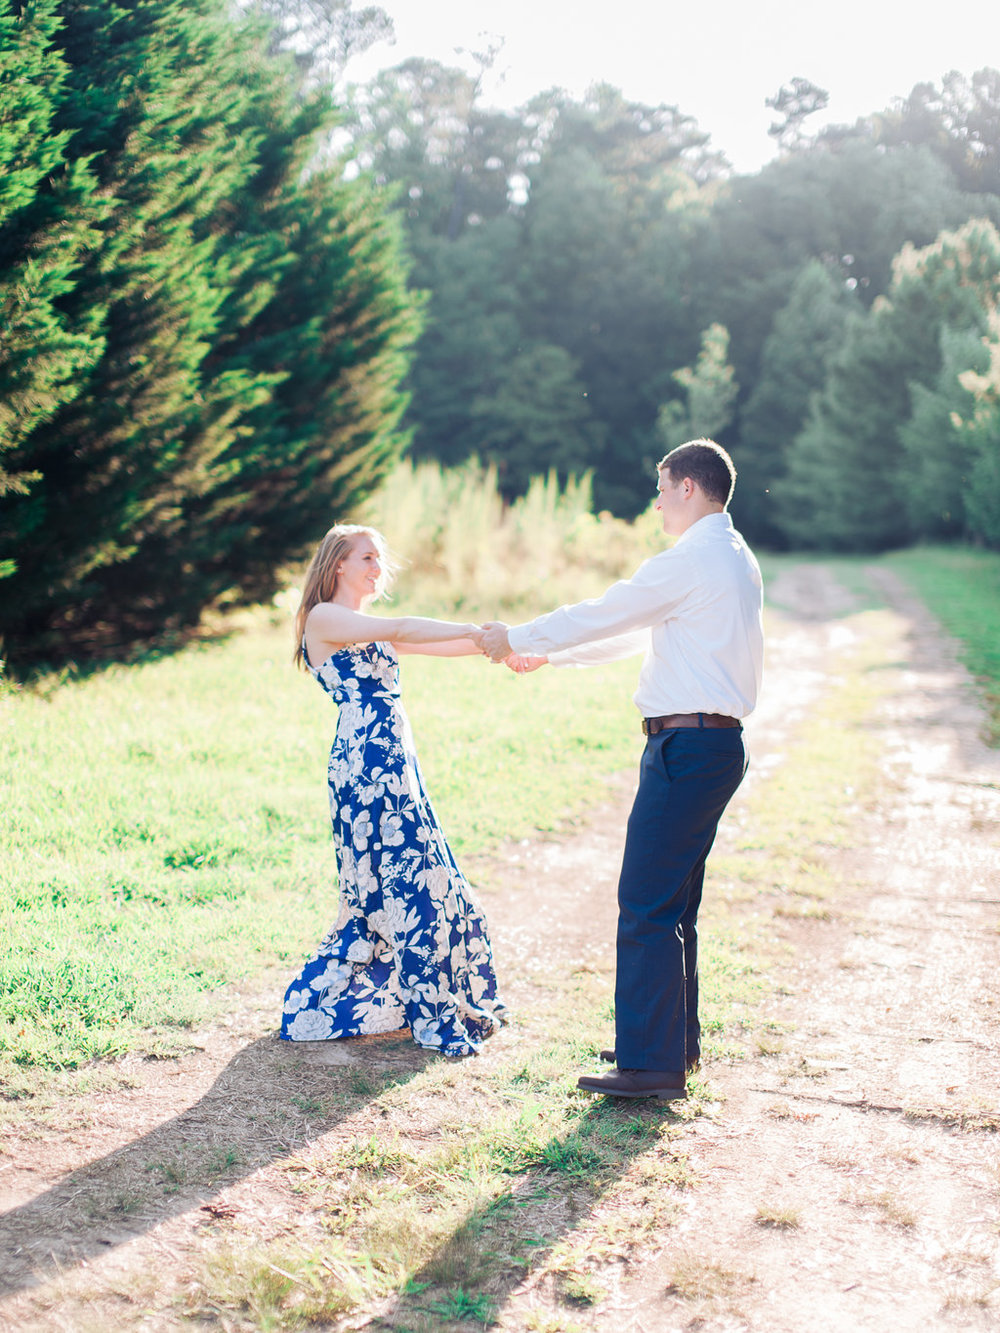 Woodstock-Engagement-Session-atlanta-wedding-photographer-hannah-forsberg-13.jpg